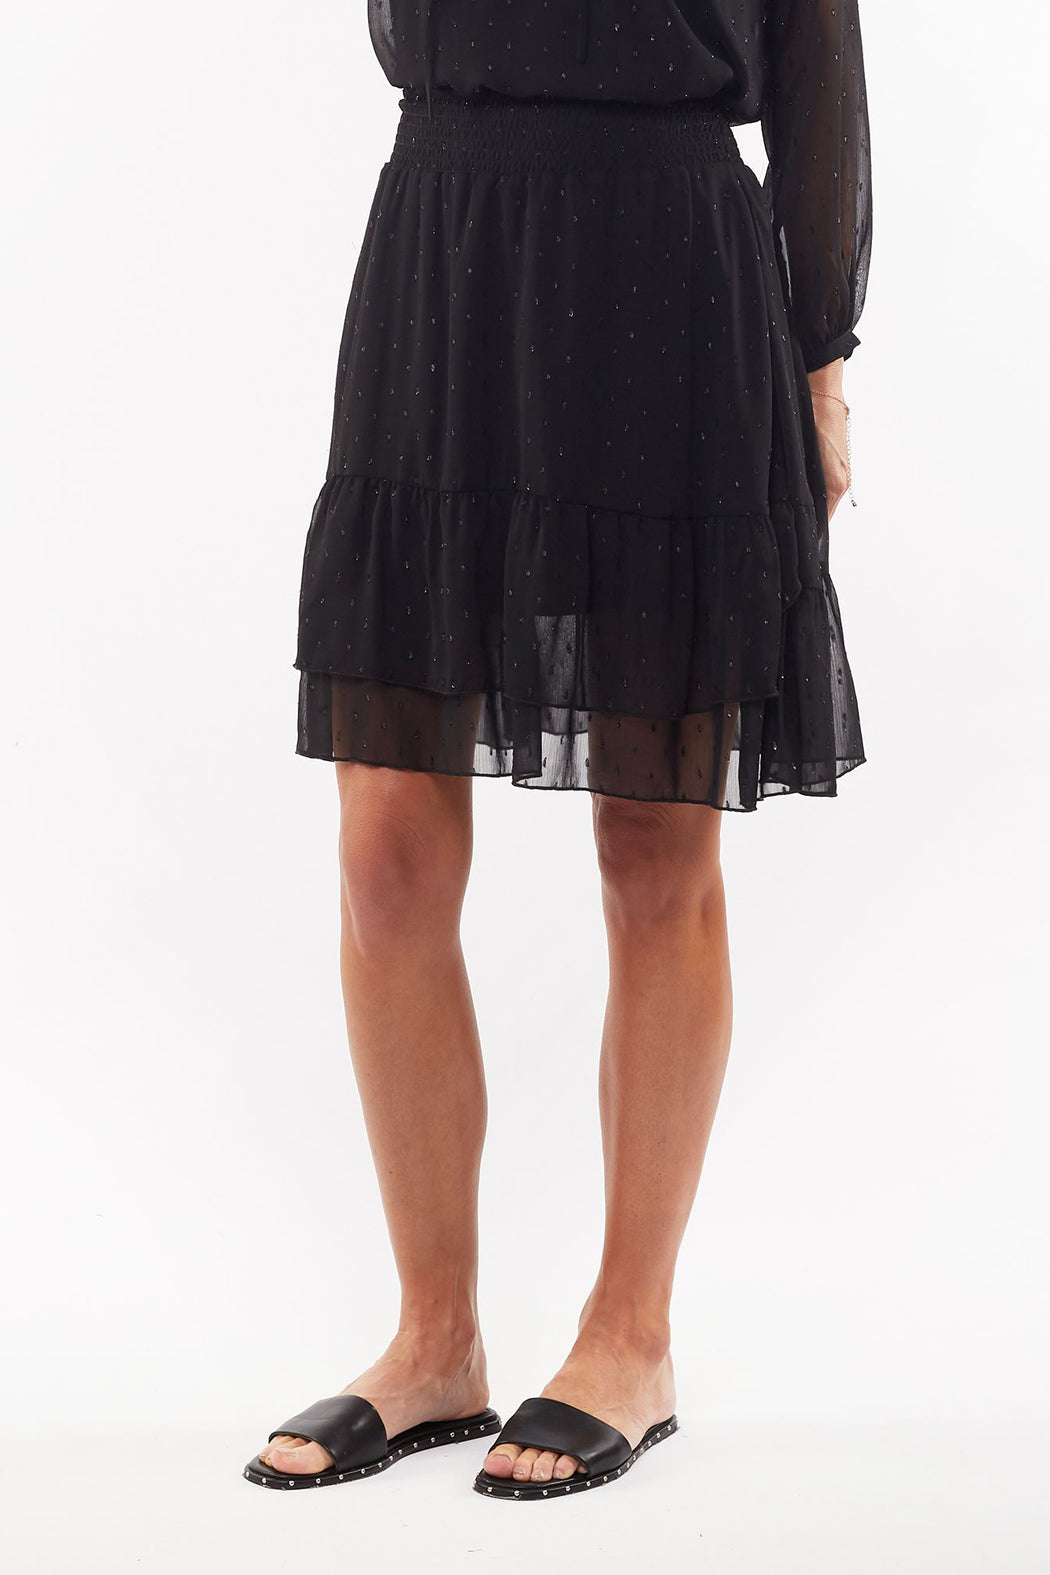 Foxwood Rhodes Skirt - Black | Shop Foxwood Wallace & Gibbs NZ